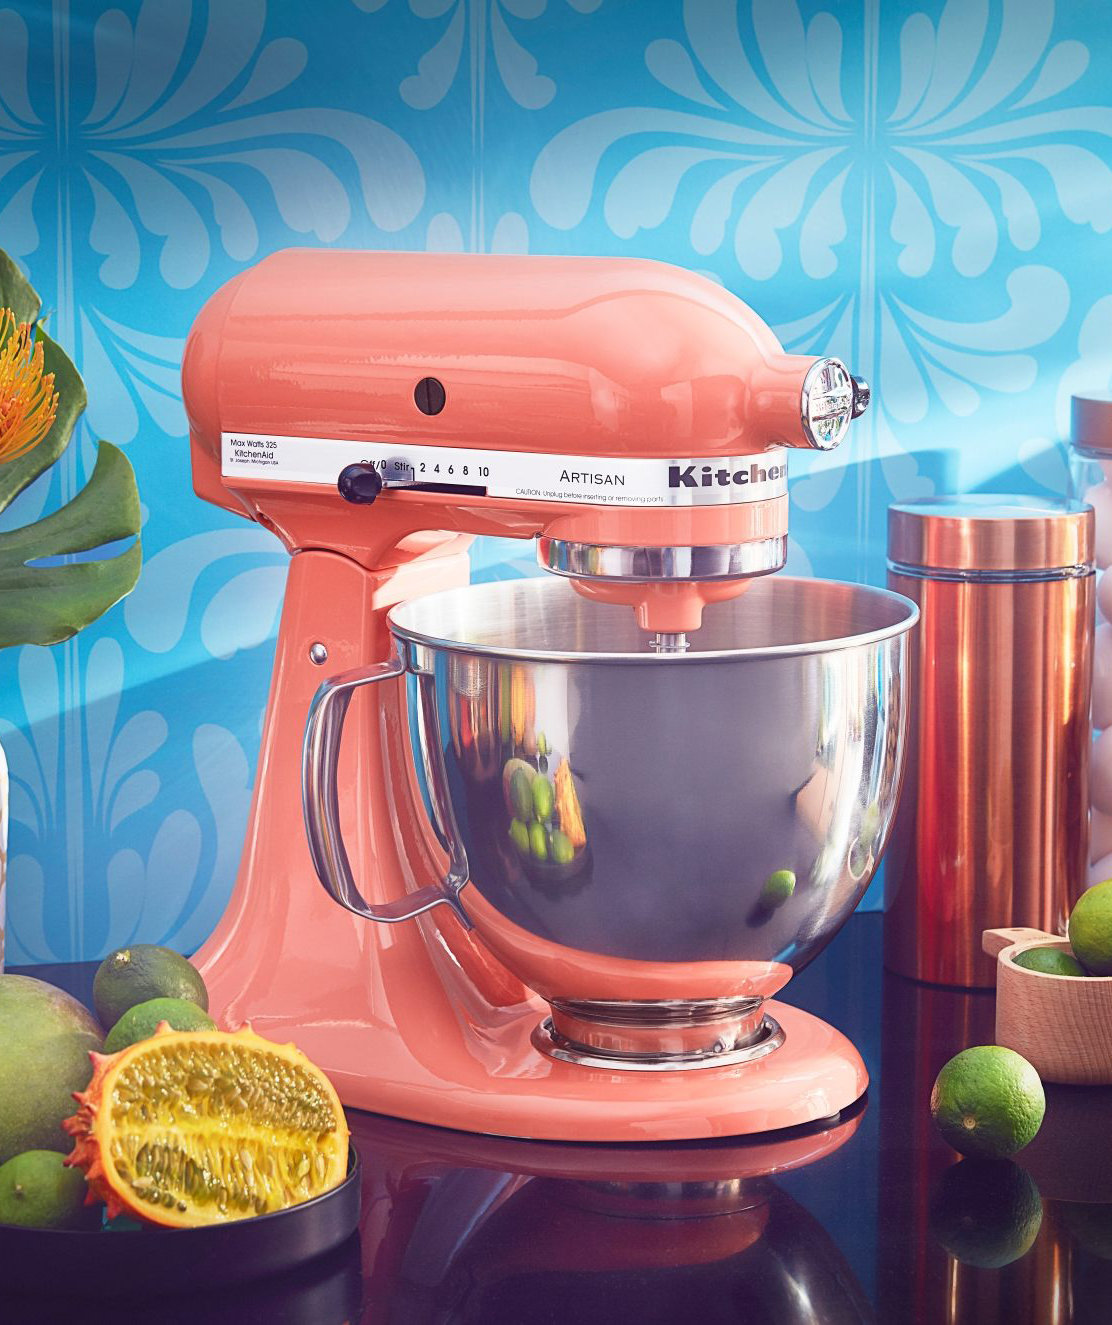 New Appliances in the KitchenAid 2018 Color of The Year Just Dropped